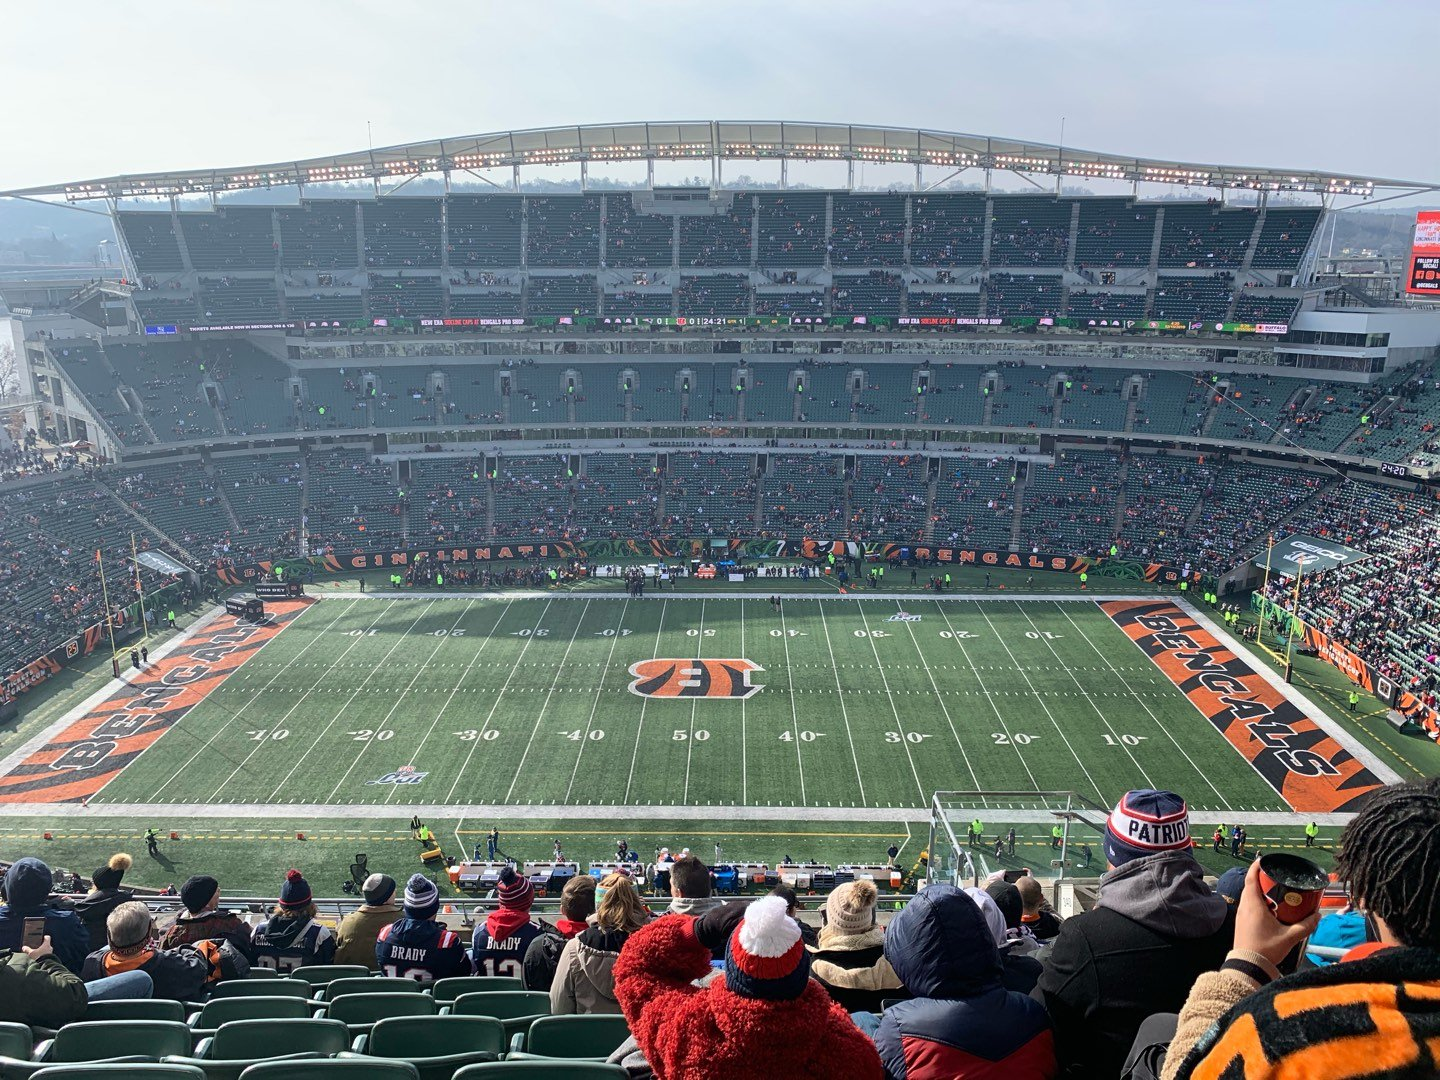 Paul Brown Stadium Section 340 Row 23 Seat 6